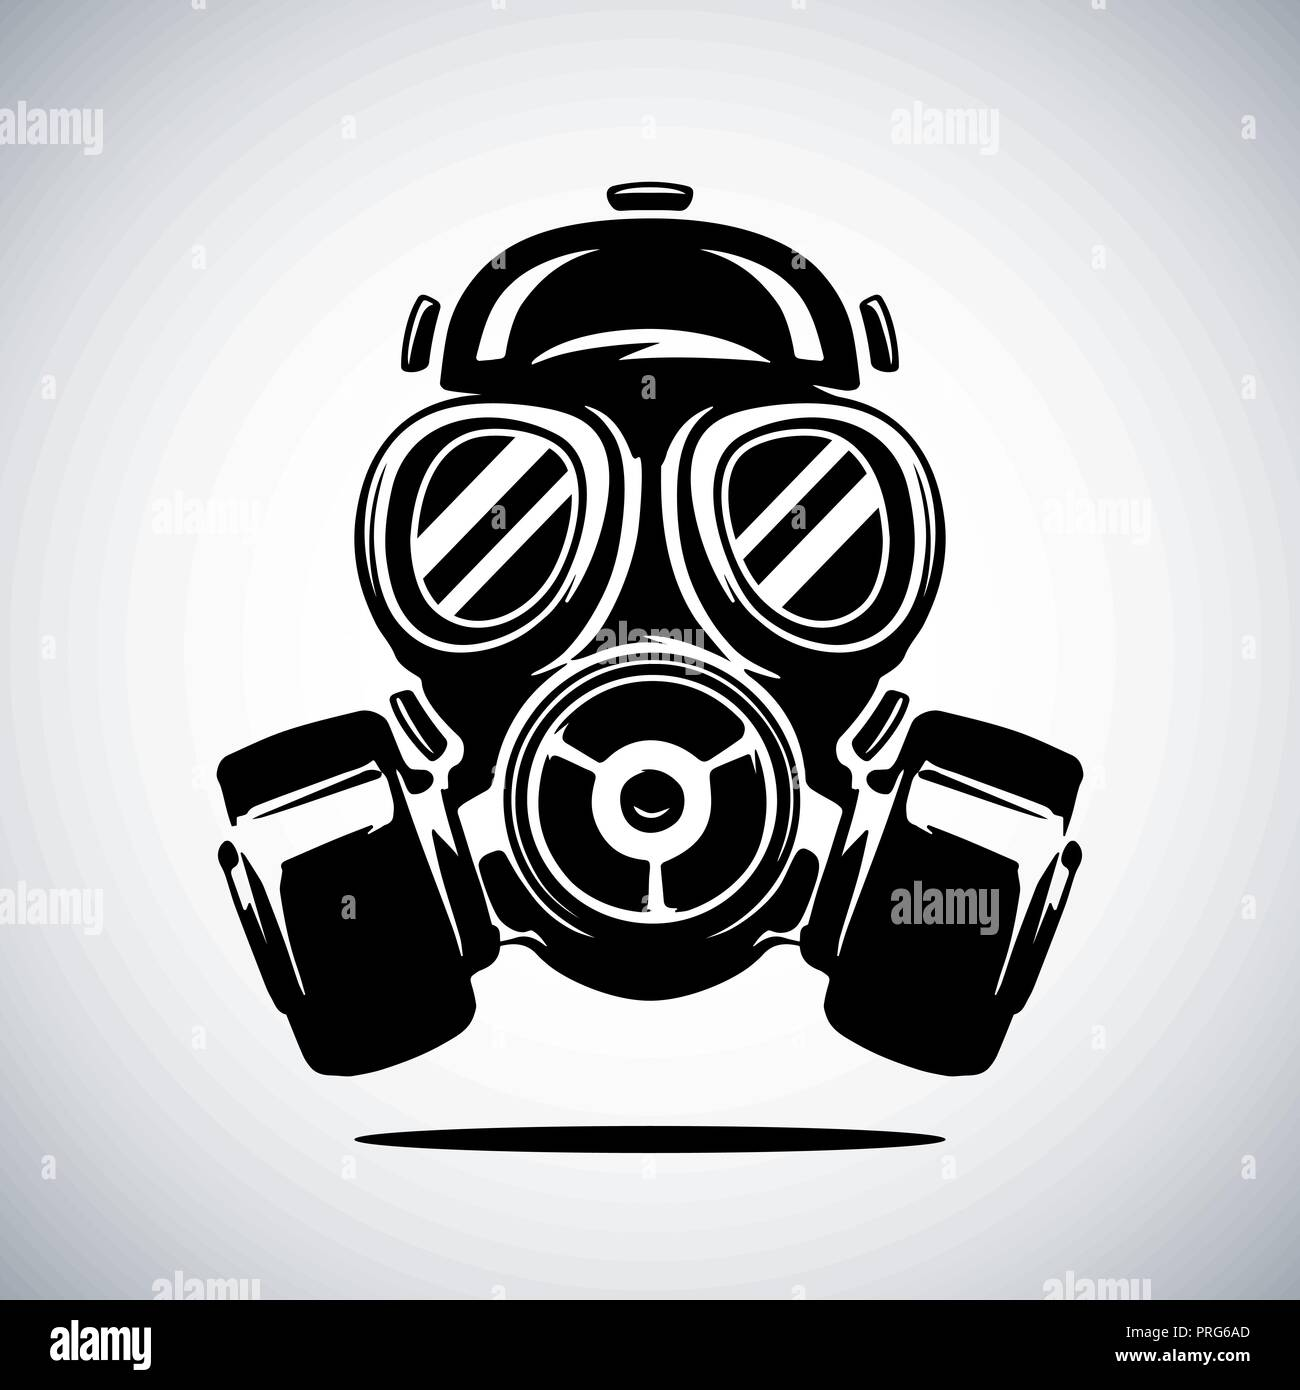 Gas mask vector illustration isolated on white background. Respirator vector illustration - Stock Image